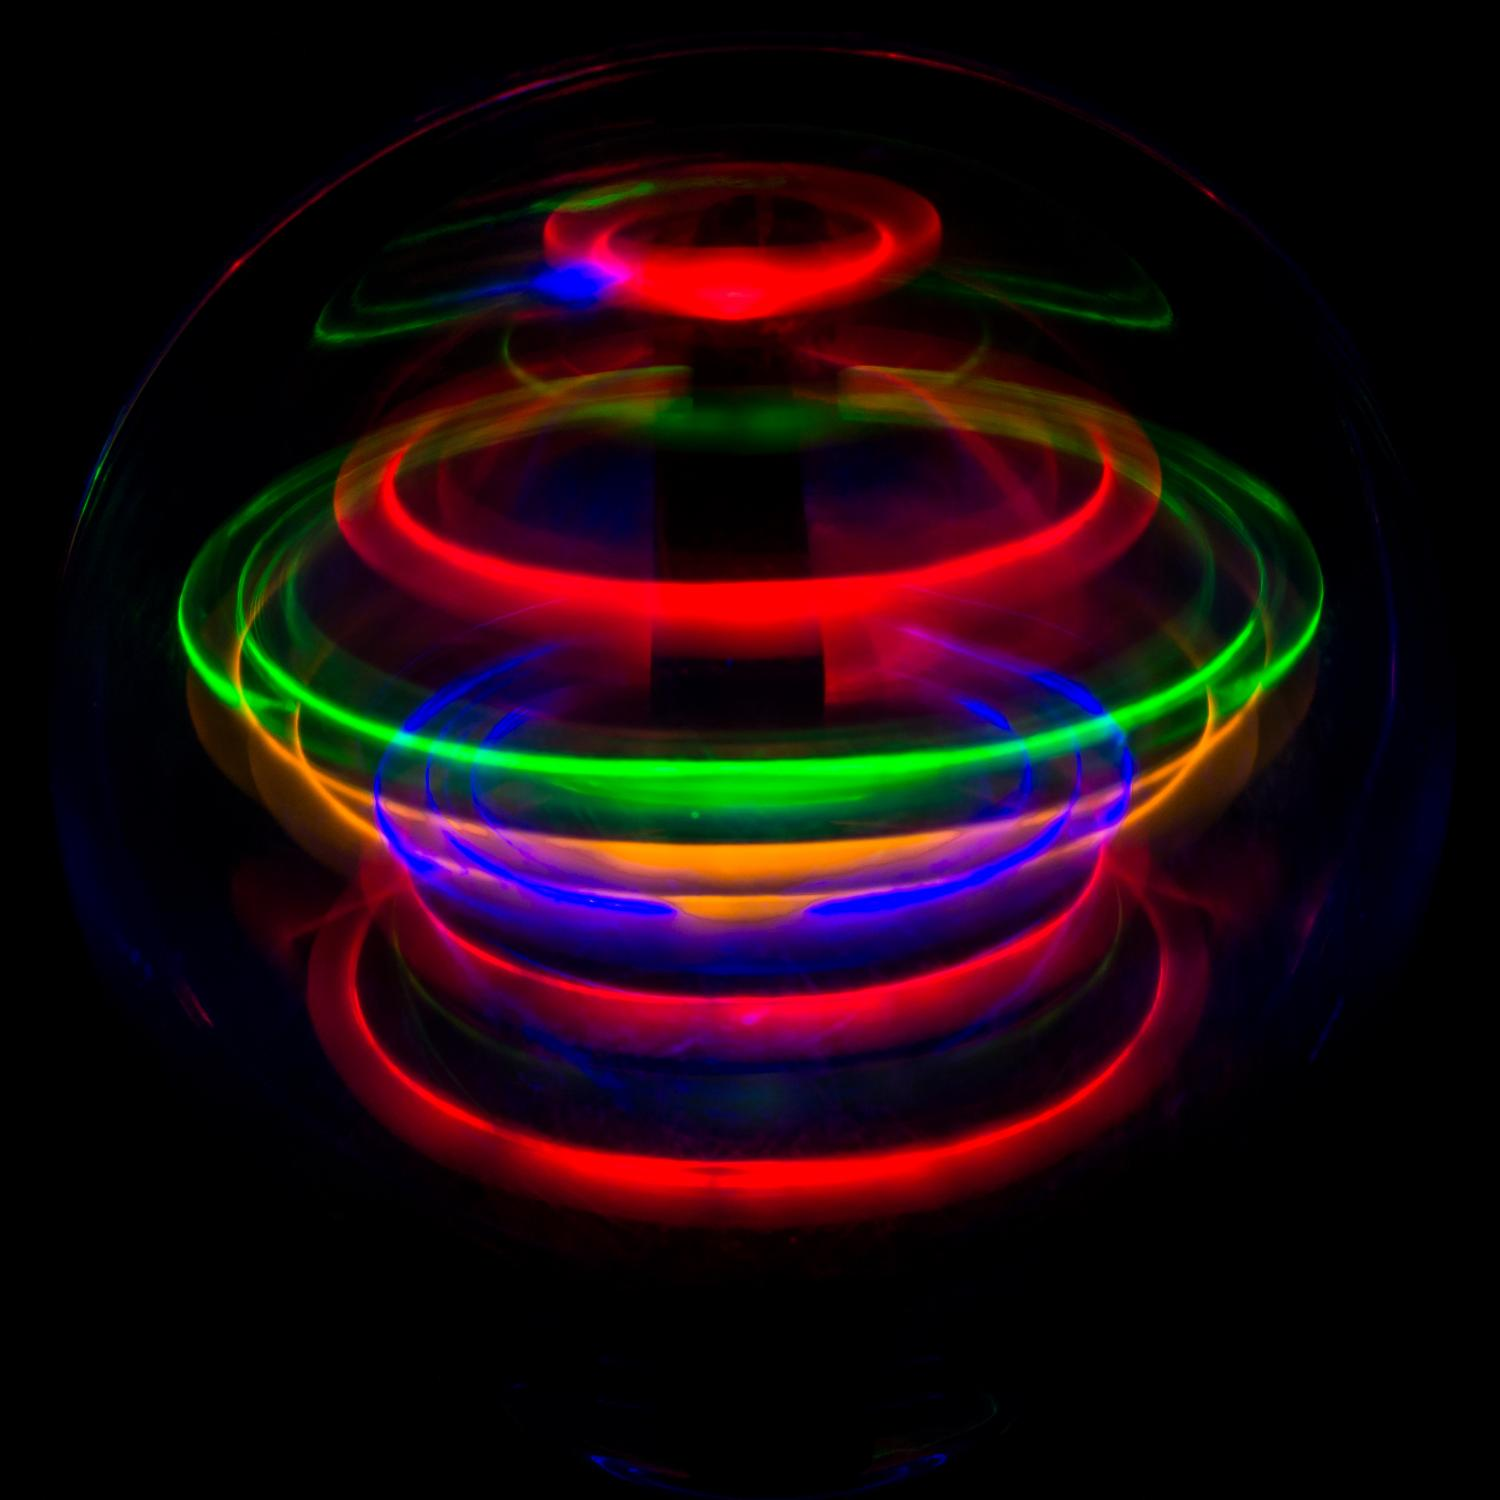 Physicists pass spin information through a superconductor